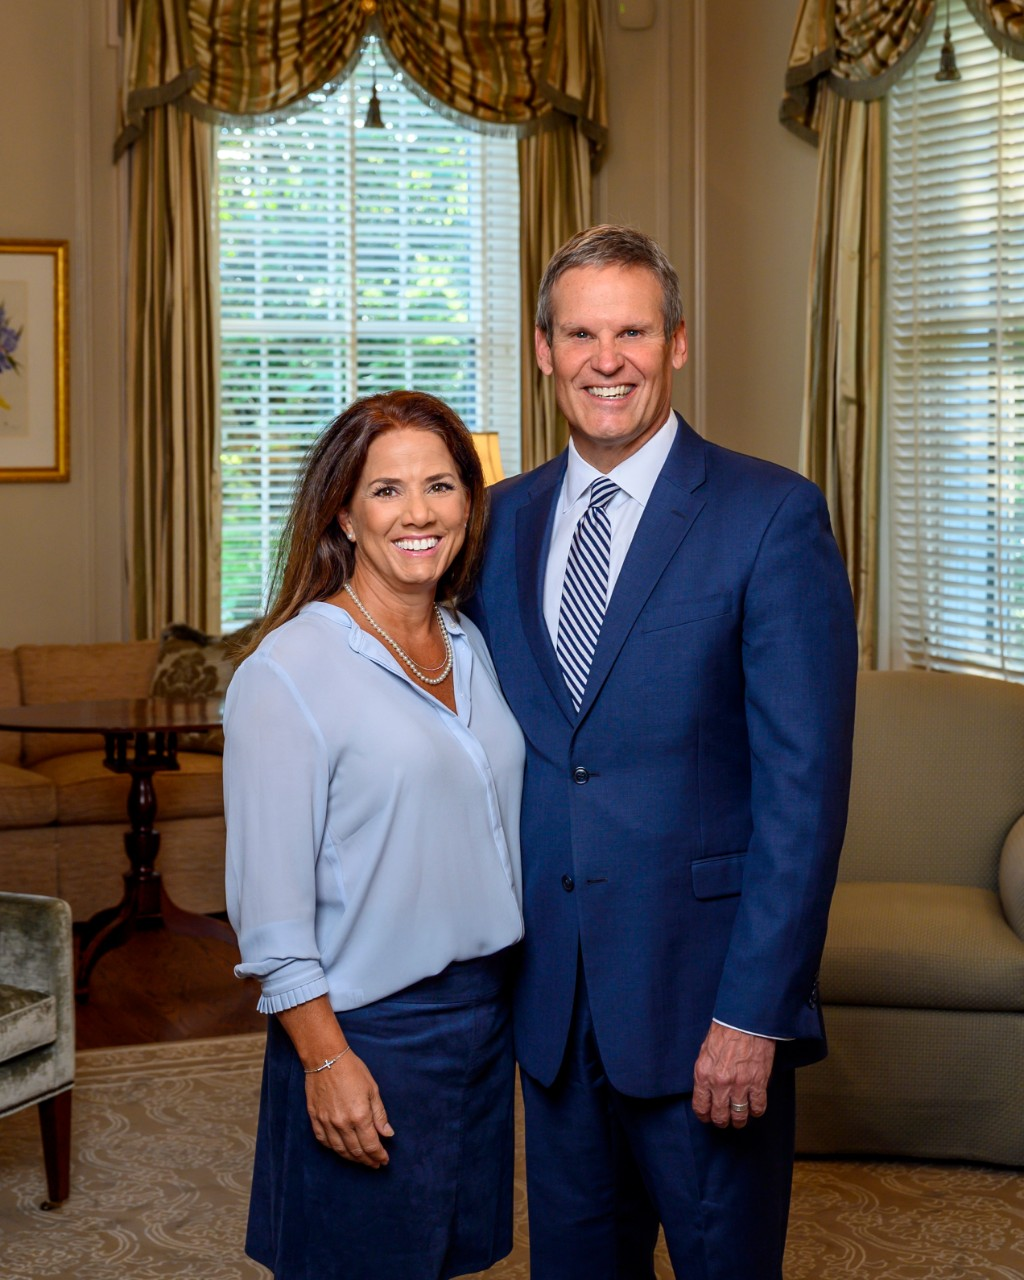 Governor Bill Lee and First Lady Maria Lee